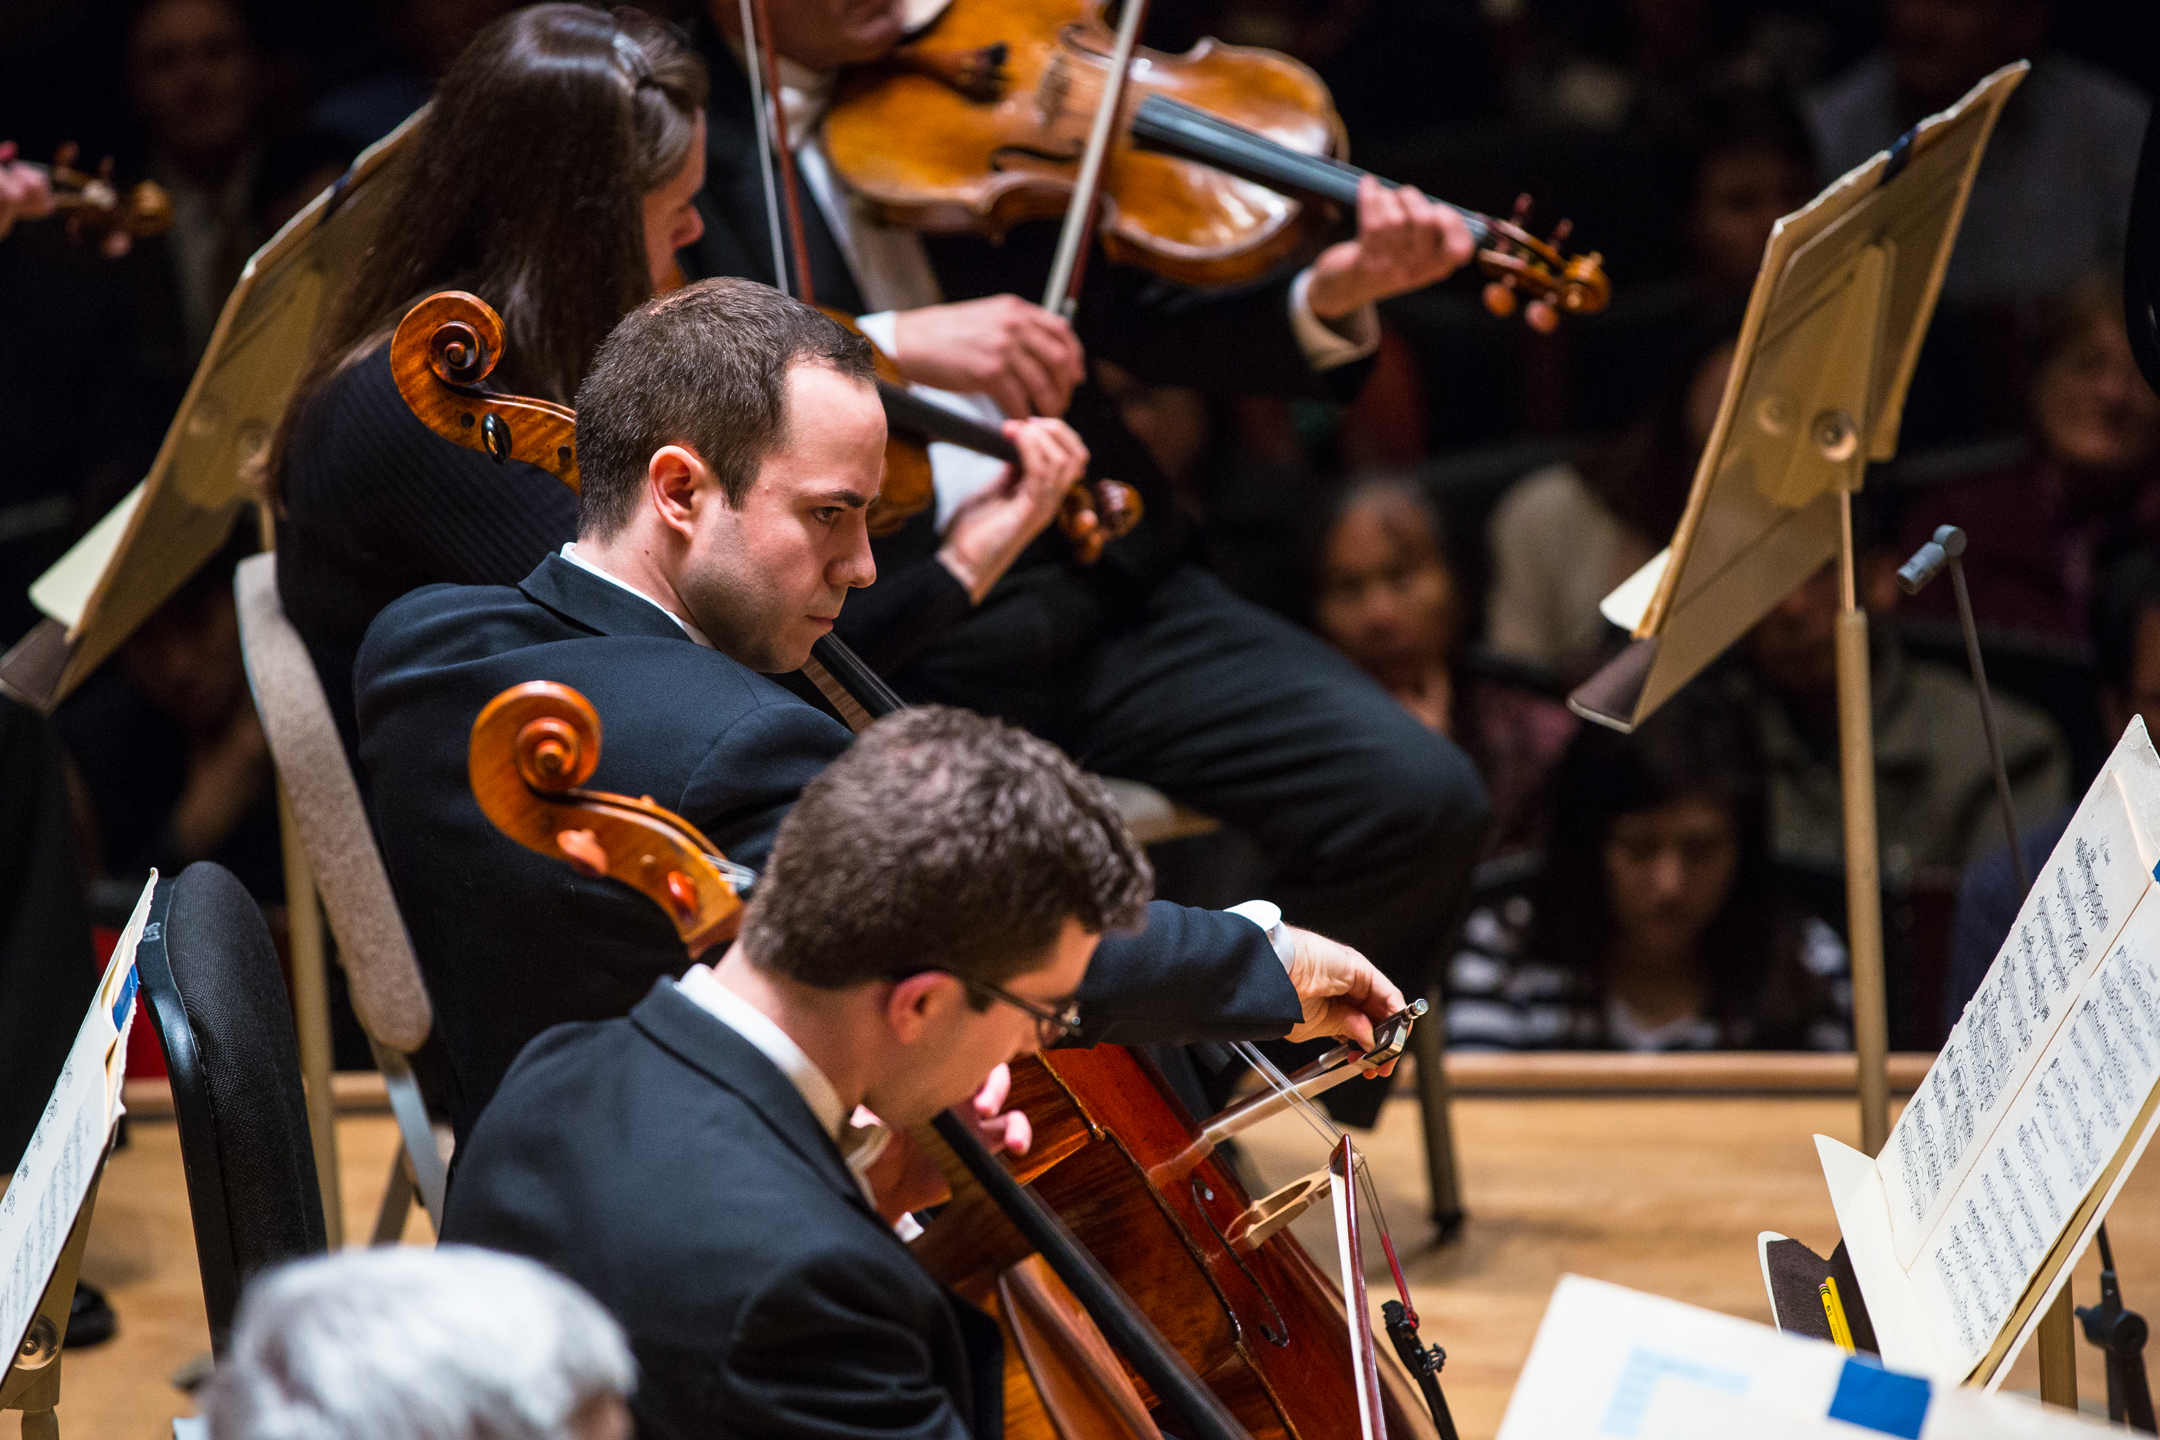 Blaise Déjardin performs during Brahms Second Symphony, in his debut as the Boston Symphony Orchestra's principal cello, 1 May 2018. Robert Torres photograph